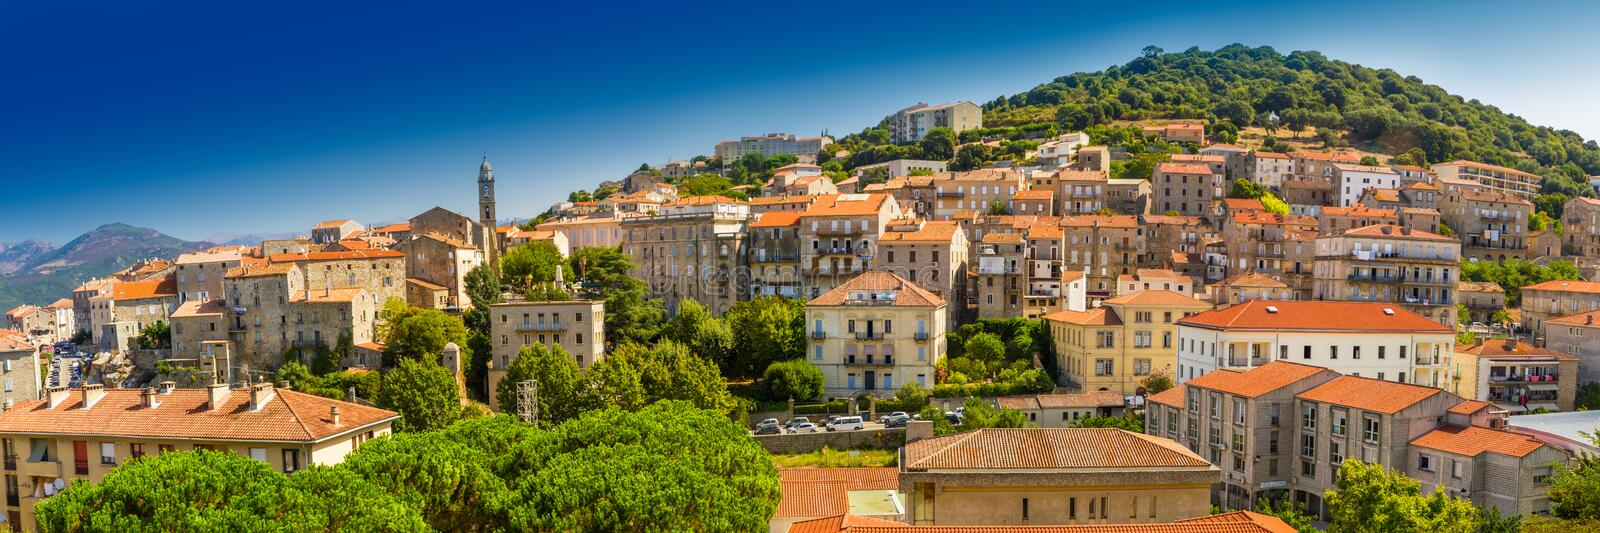 Historic town Sartene, Corsica, France, Europe. Sartene old town with green forest and mountains, Corsica, France, Europe stock image